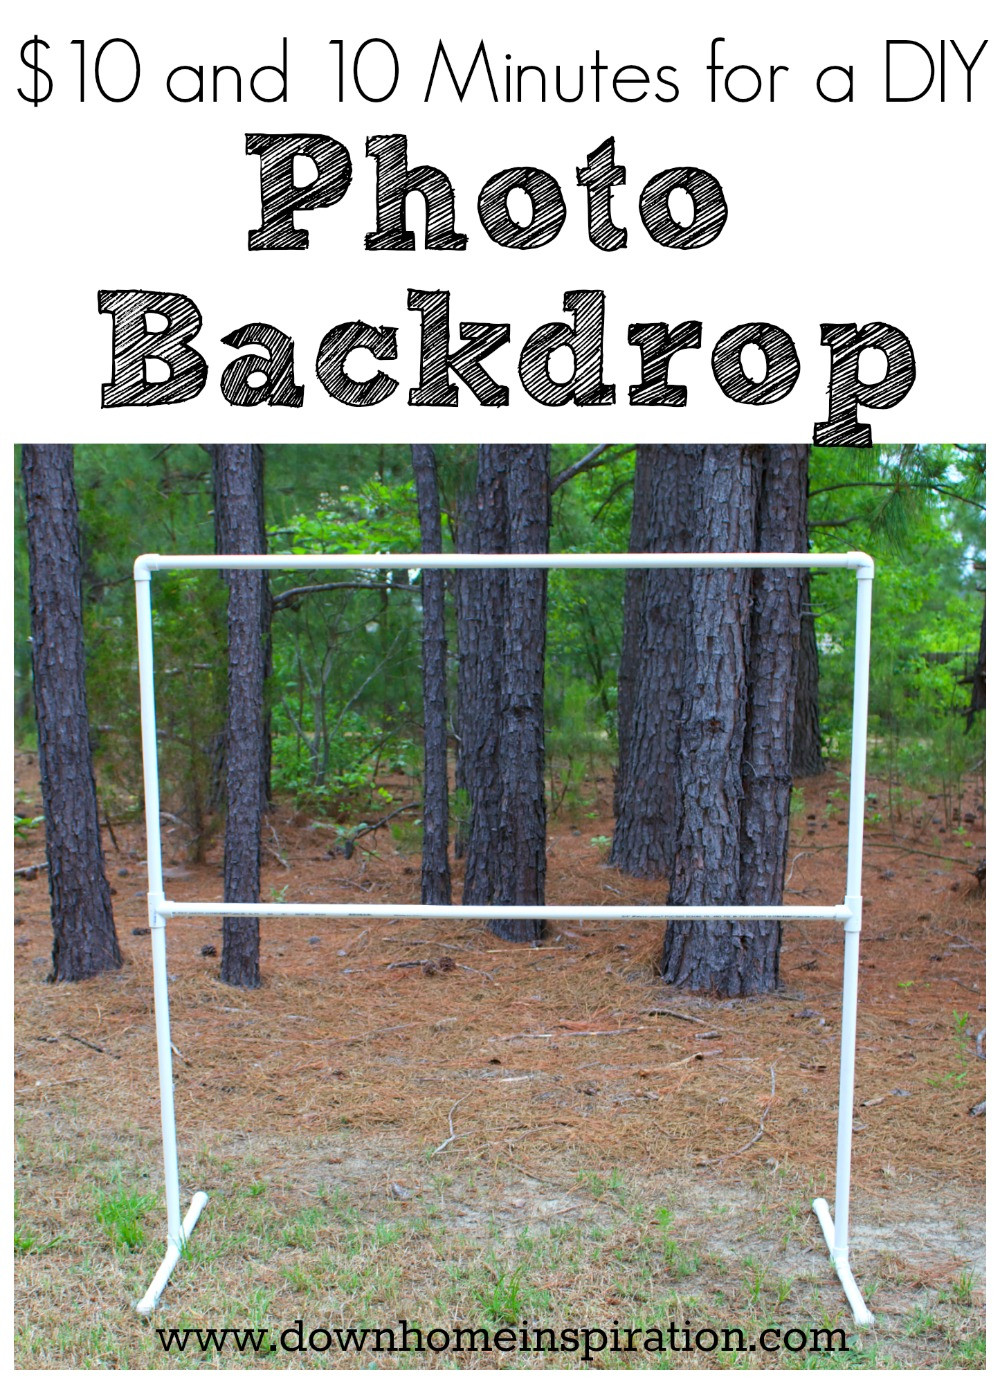 Best ideas about DIY Photo Booth Stand . Save or Pin $10 and 10 Minutes for a DIY Backdrop Down Home Now.